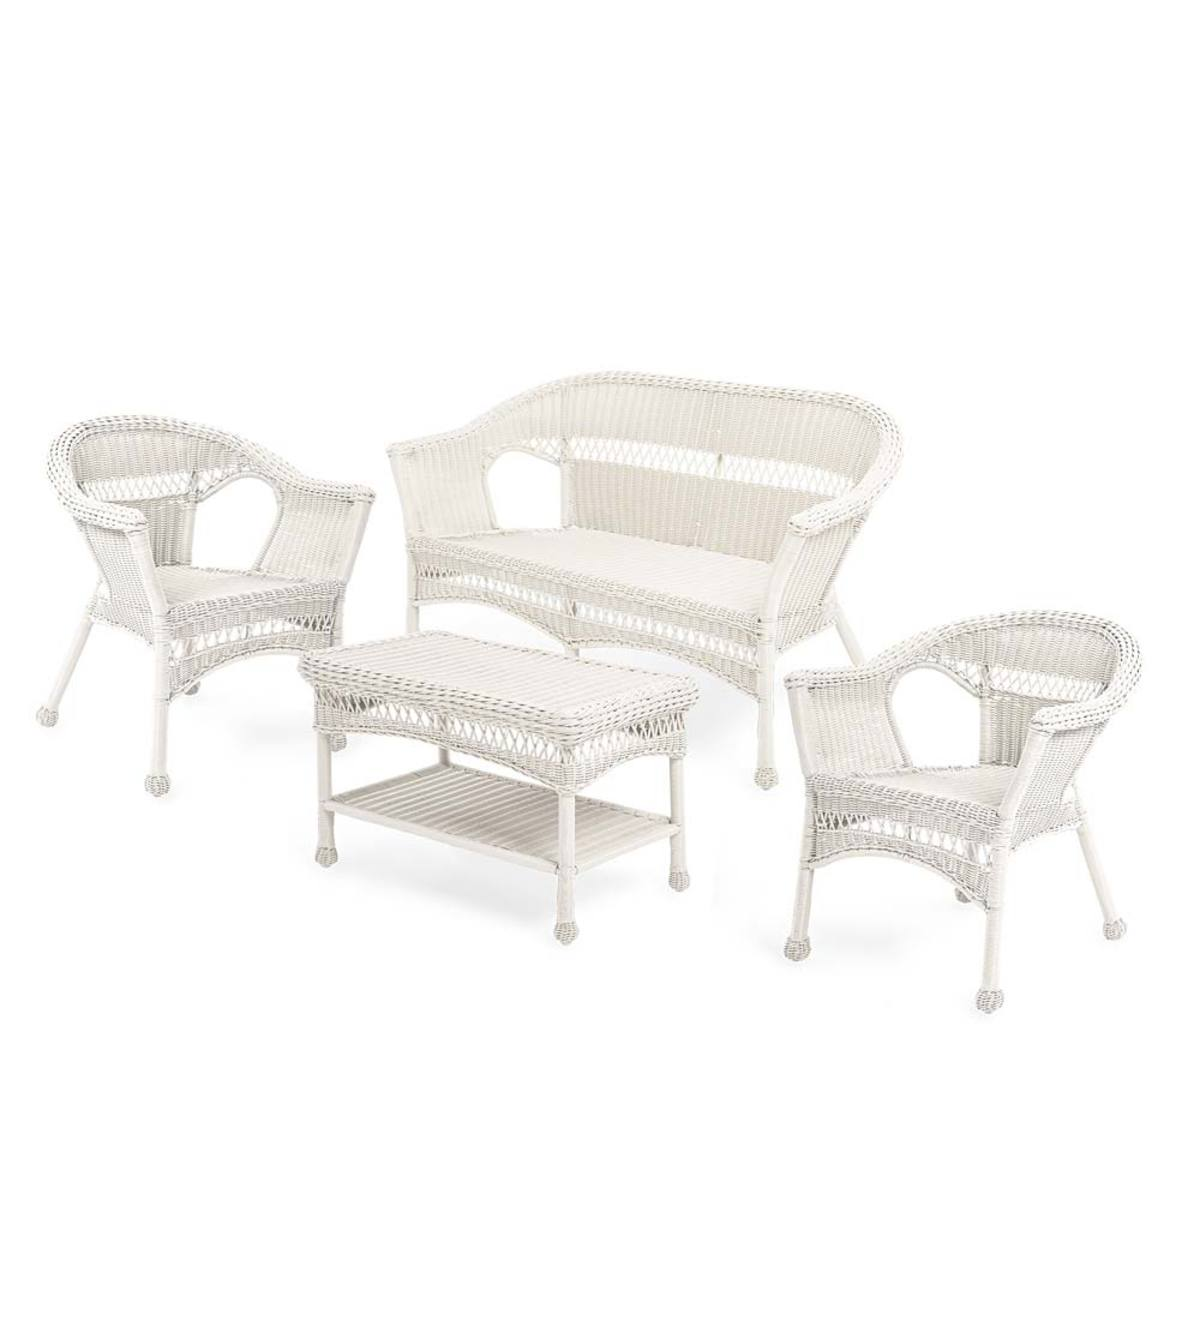 Easy Care Resin Wicker Love Seat Chairs And Coffee Table